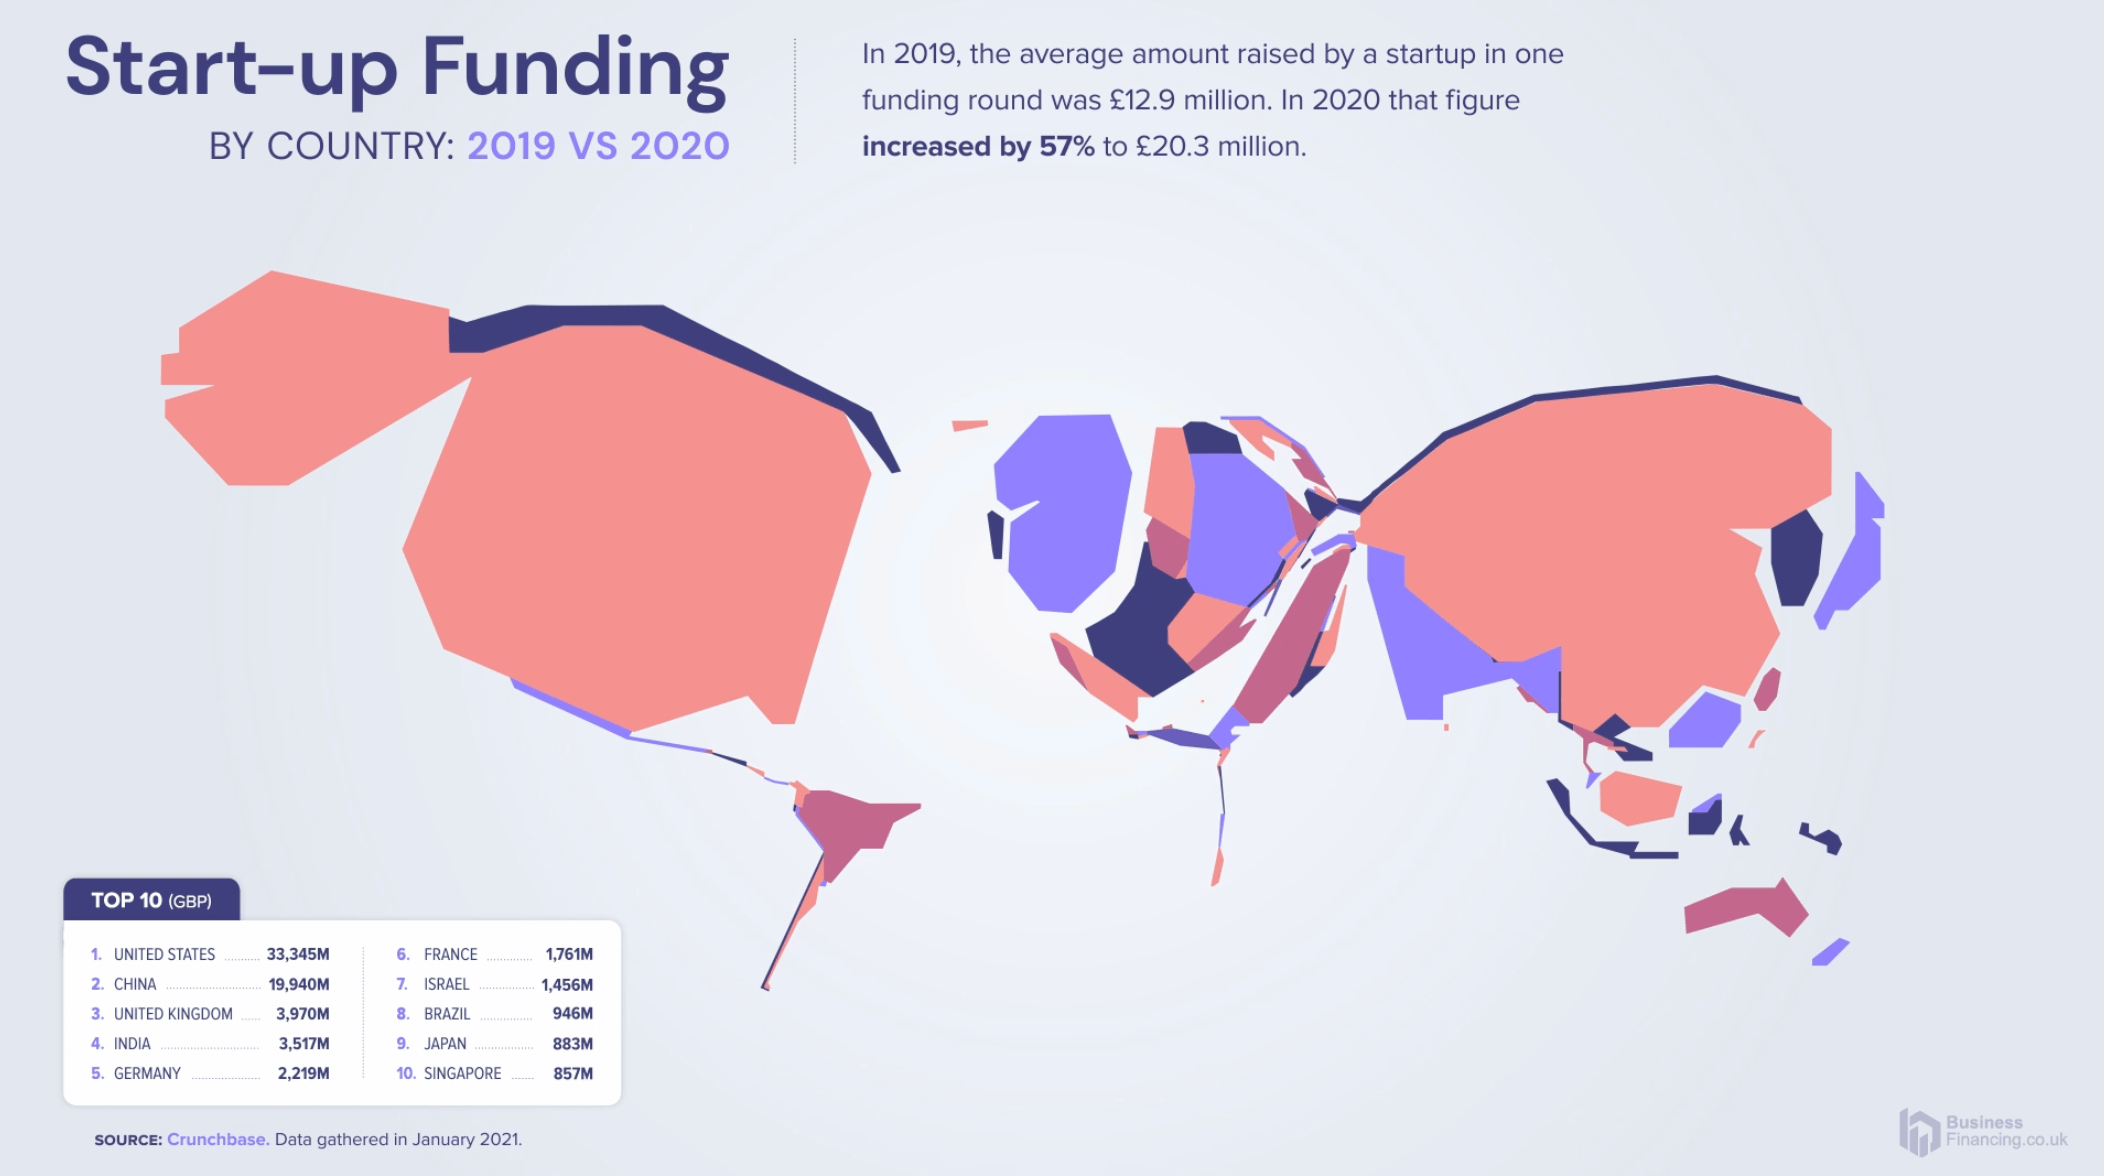 Start-up Funding by Industry